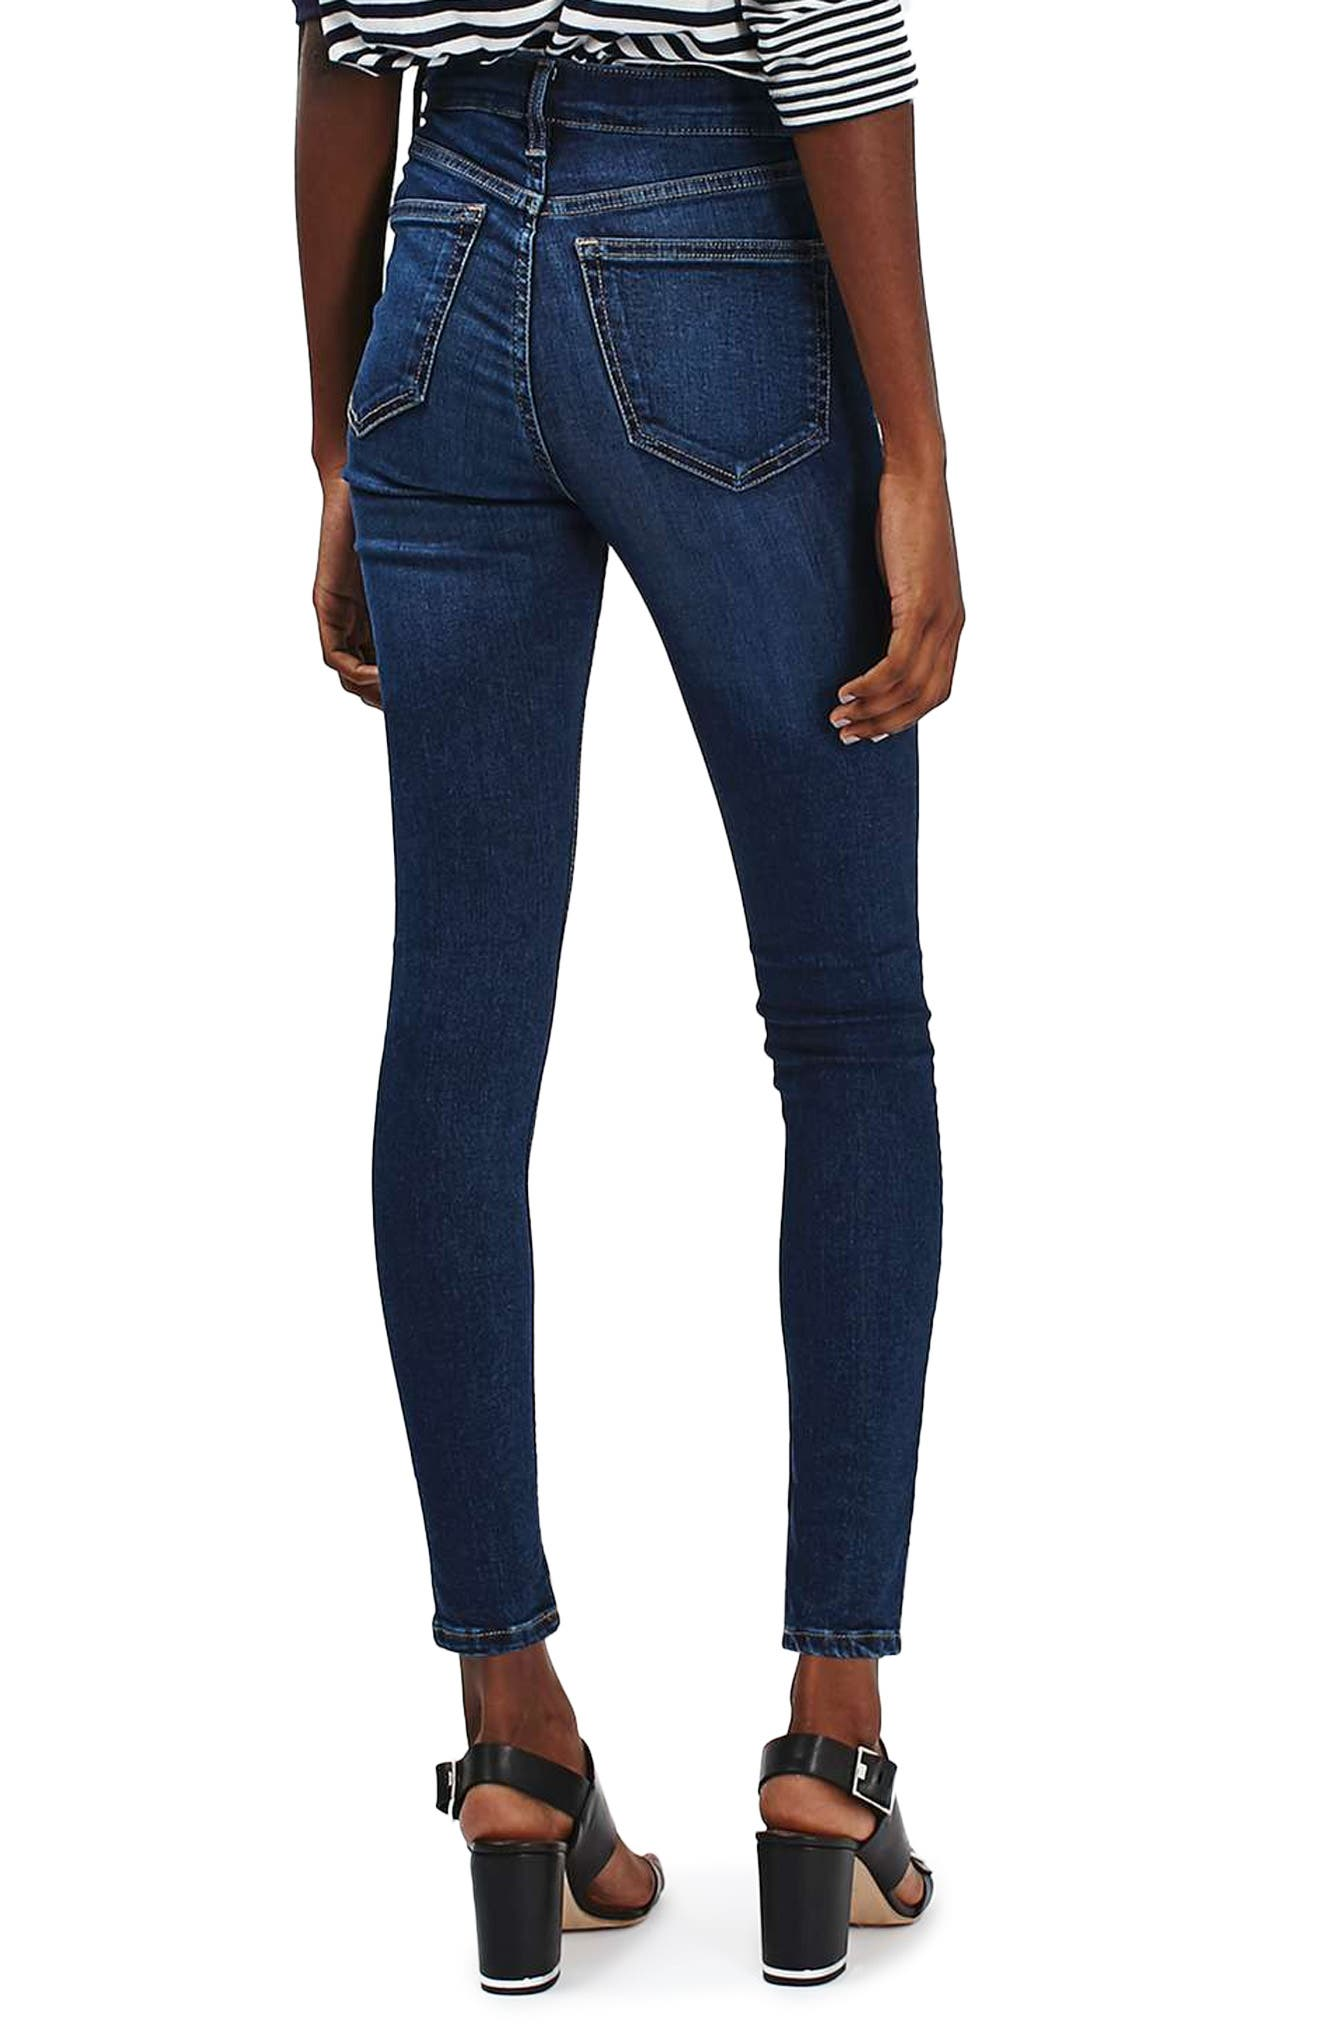 Jamie High Waist Ankle Skinny Jeans,                             Alternate thumbnail 2, color,                             Indigo